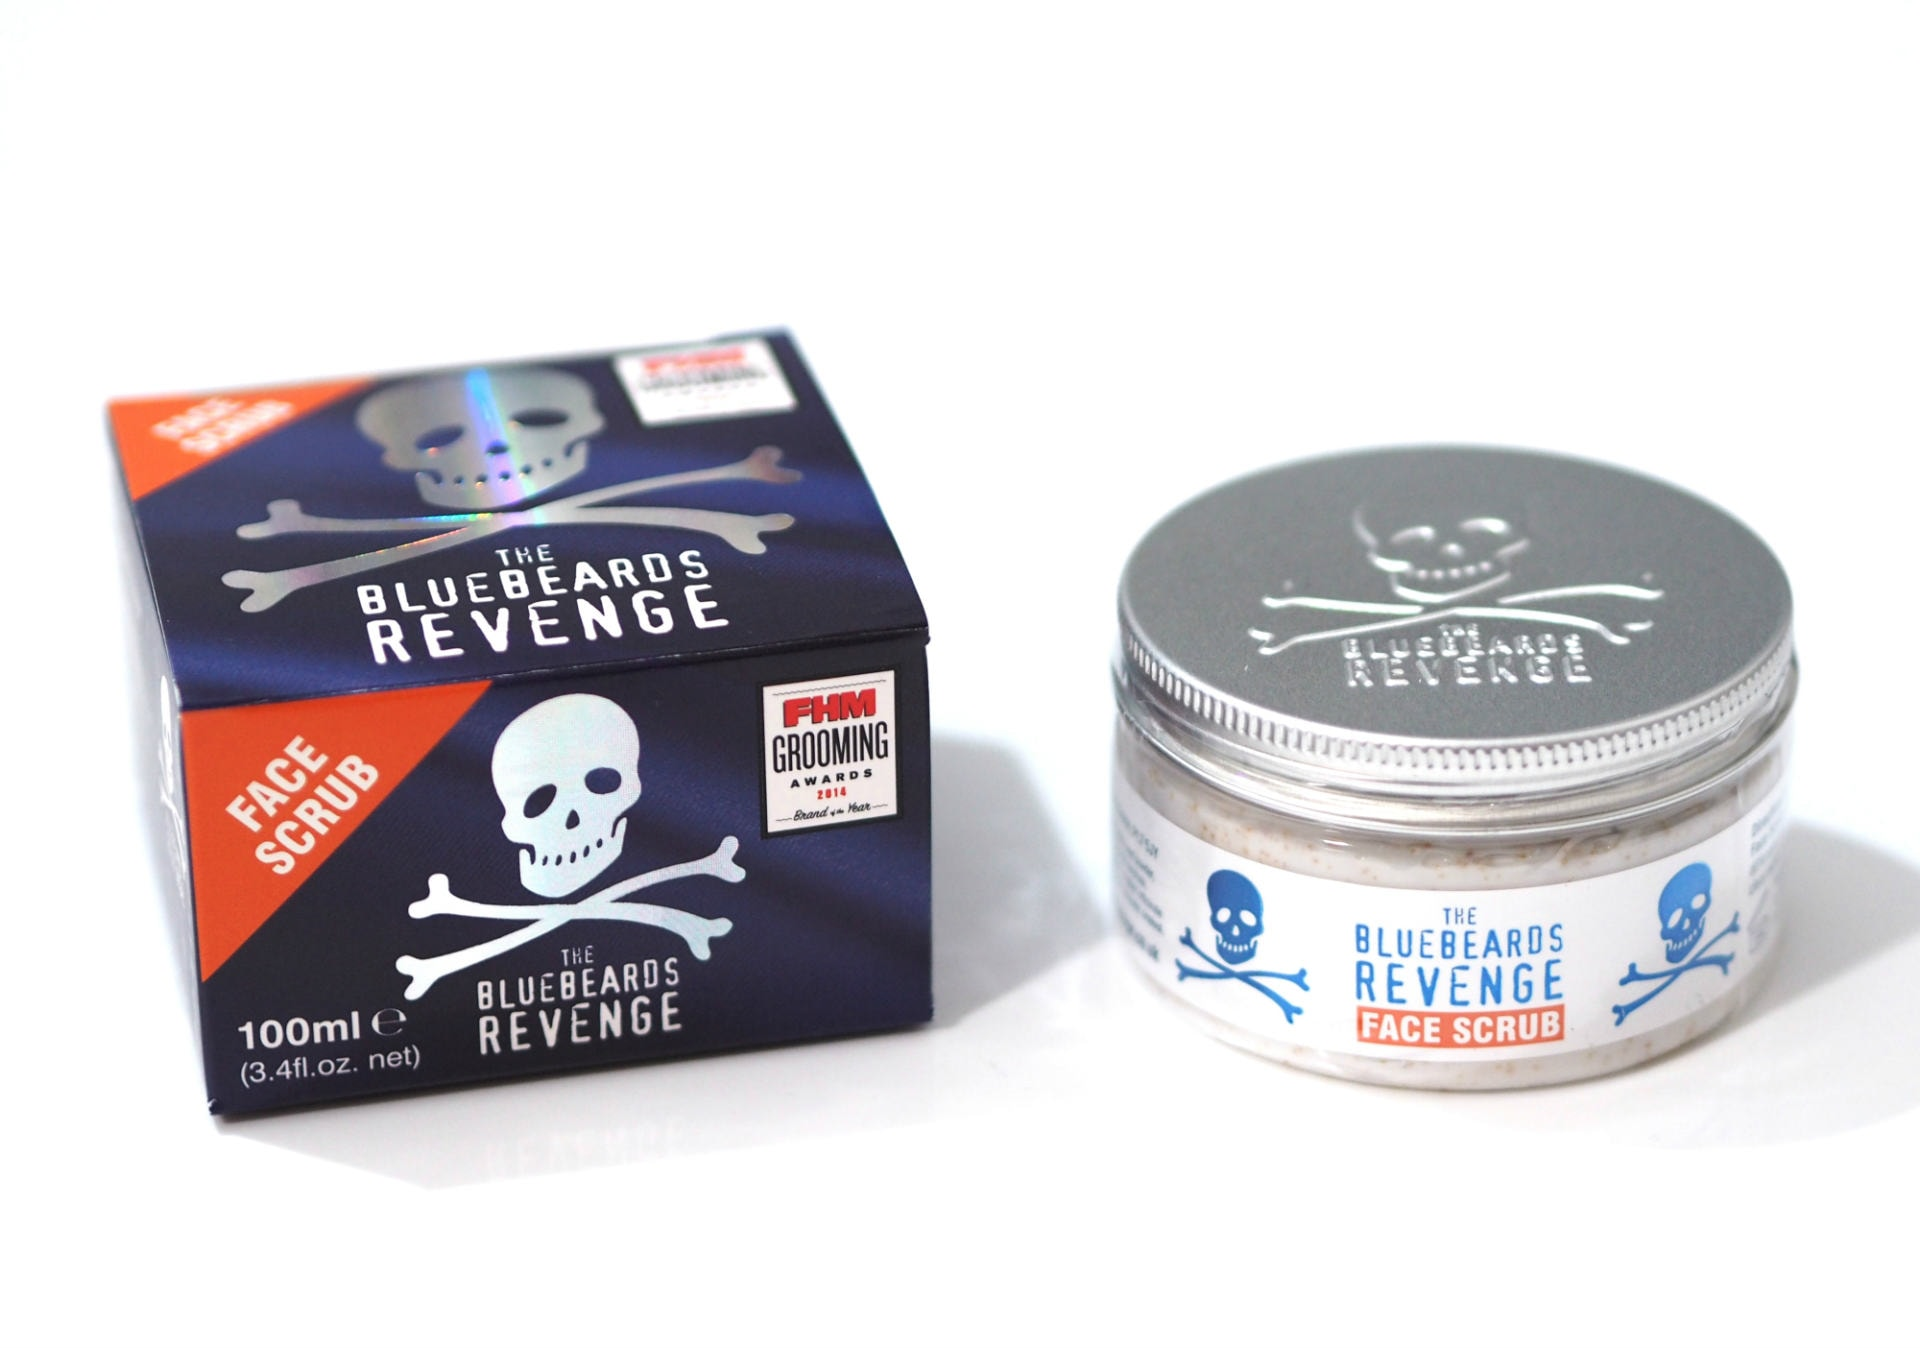 The Bluebeard's Revenge Designer Stubble Kit